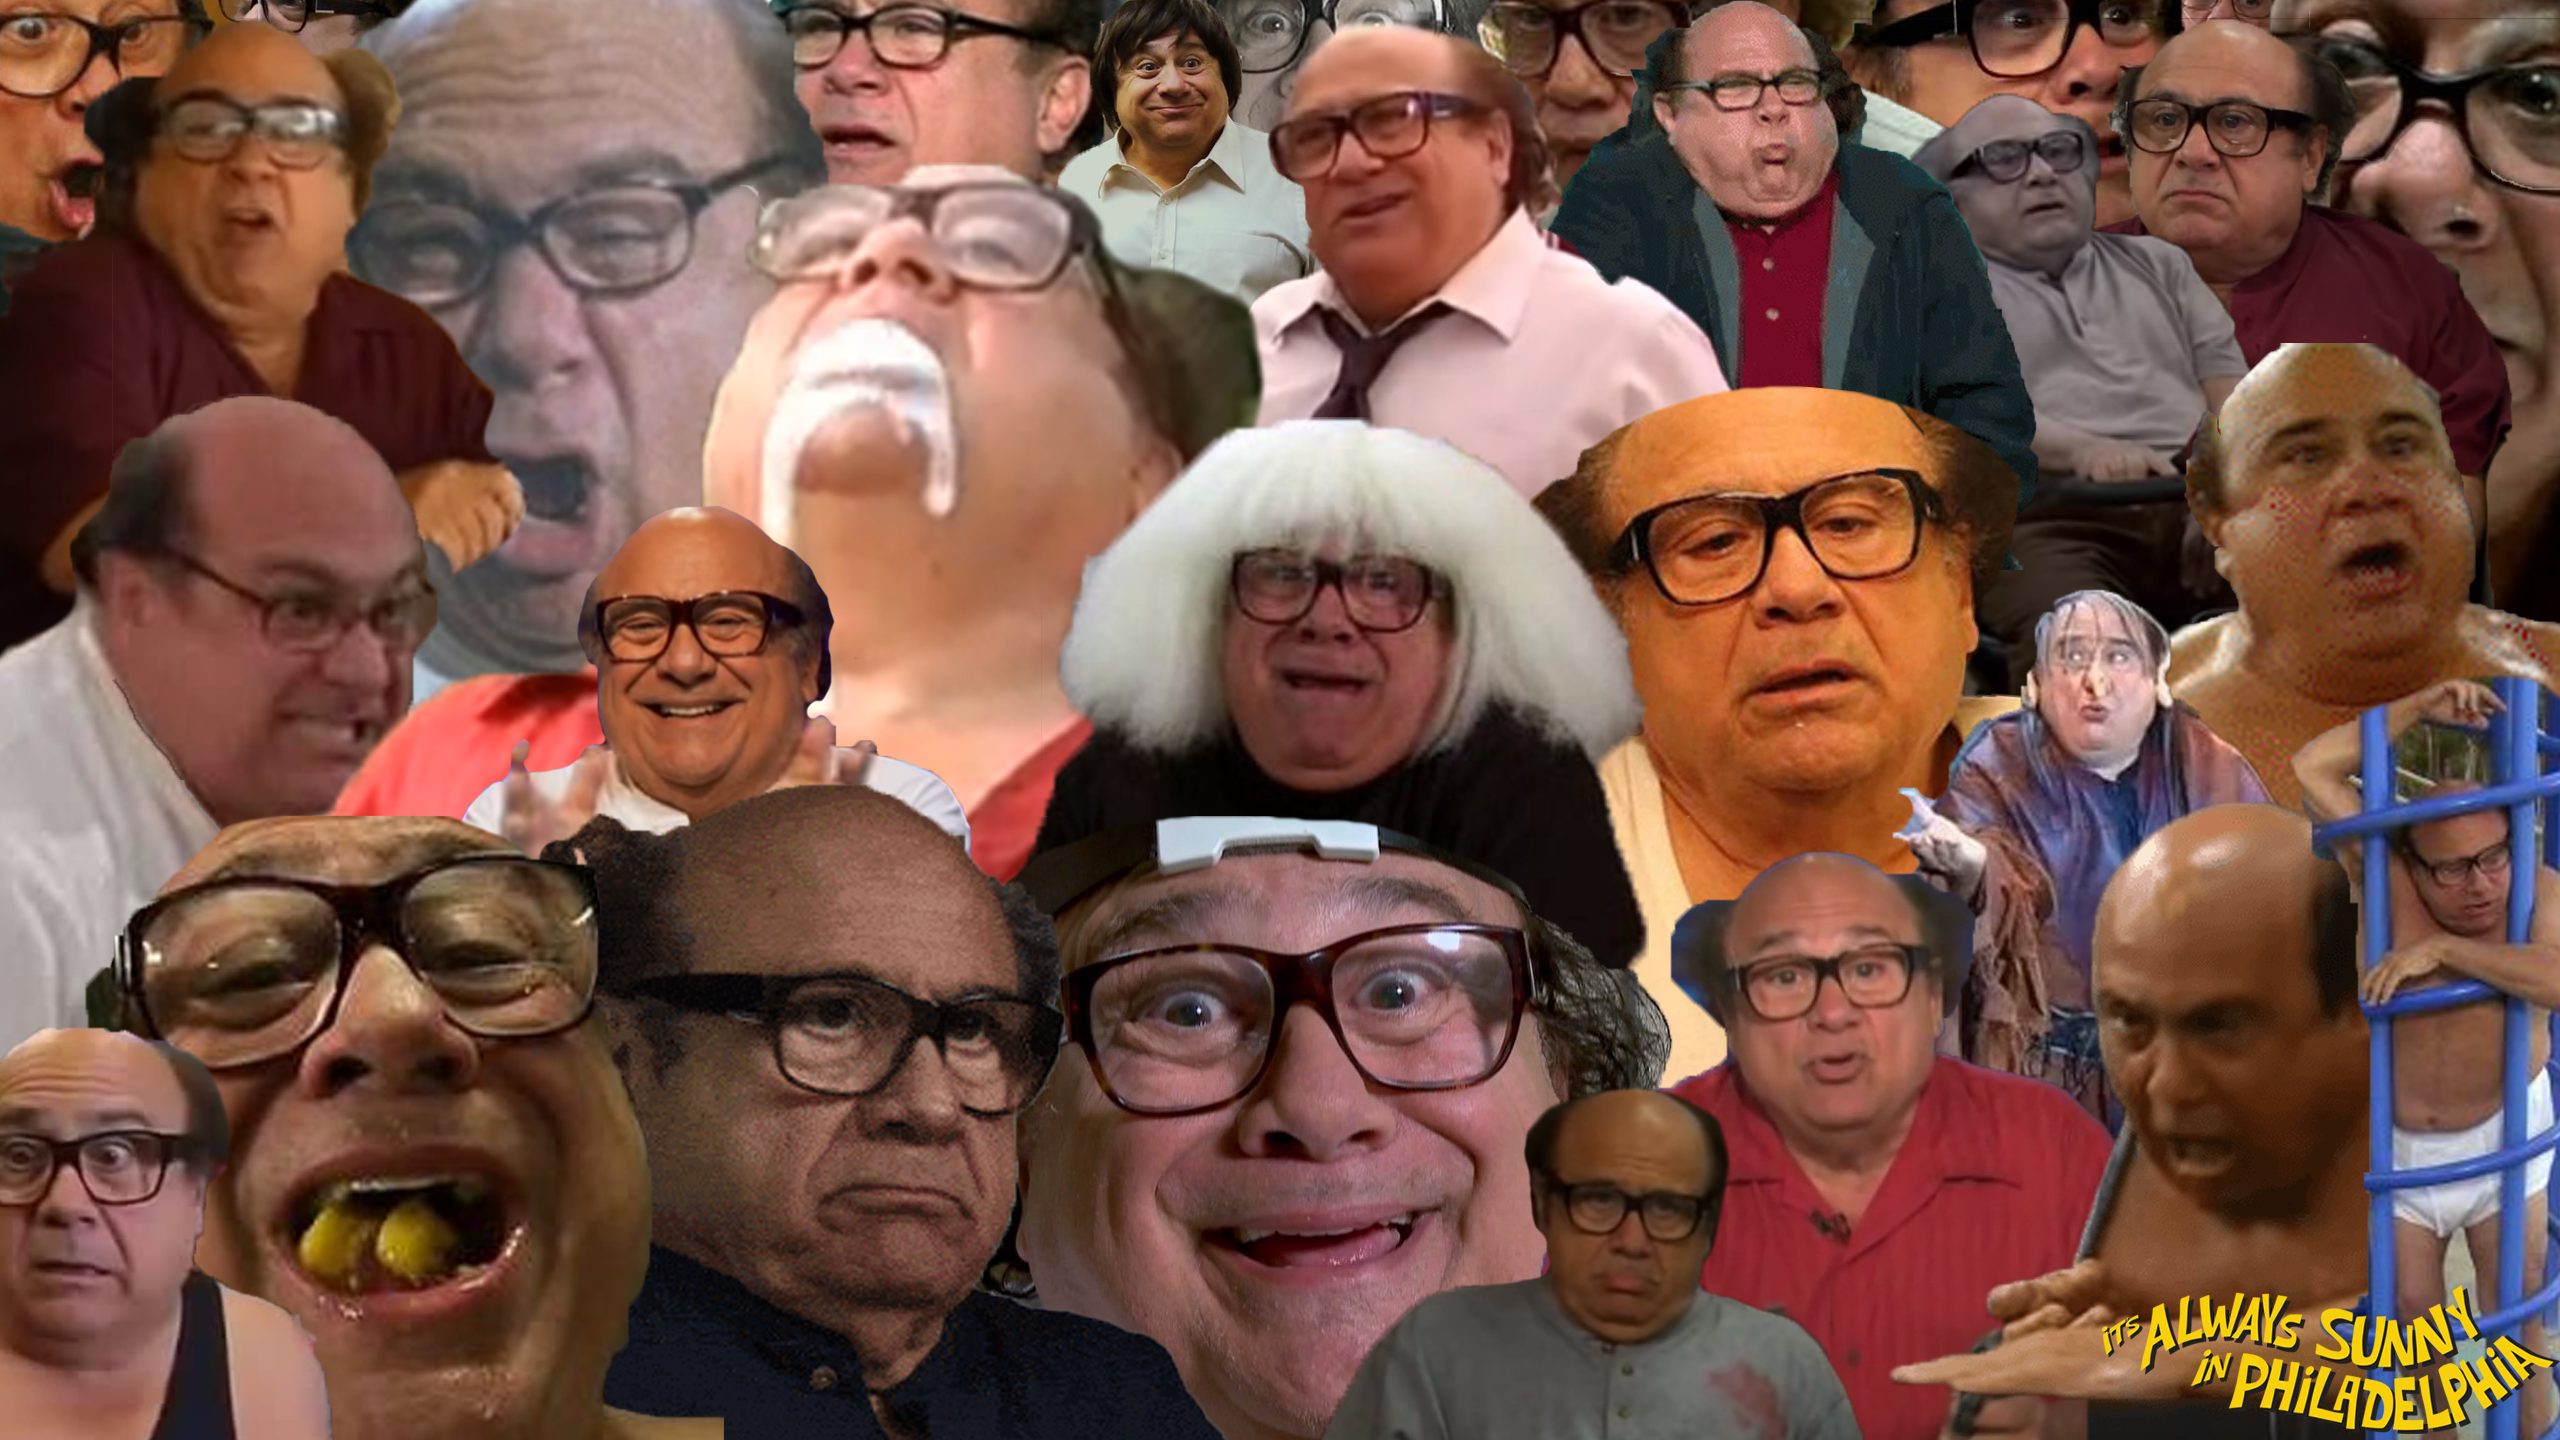 The Best Always Sunny Wallpapers Always Sunny Gifs